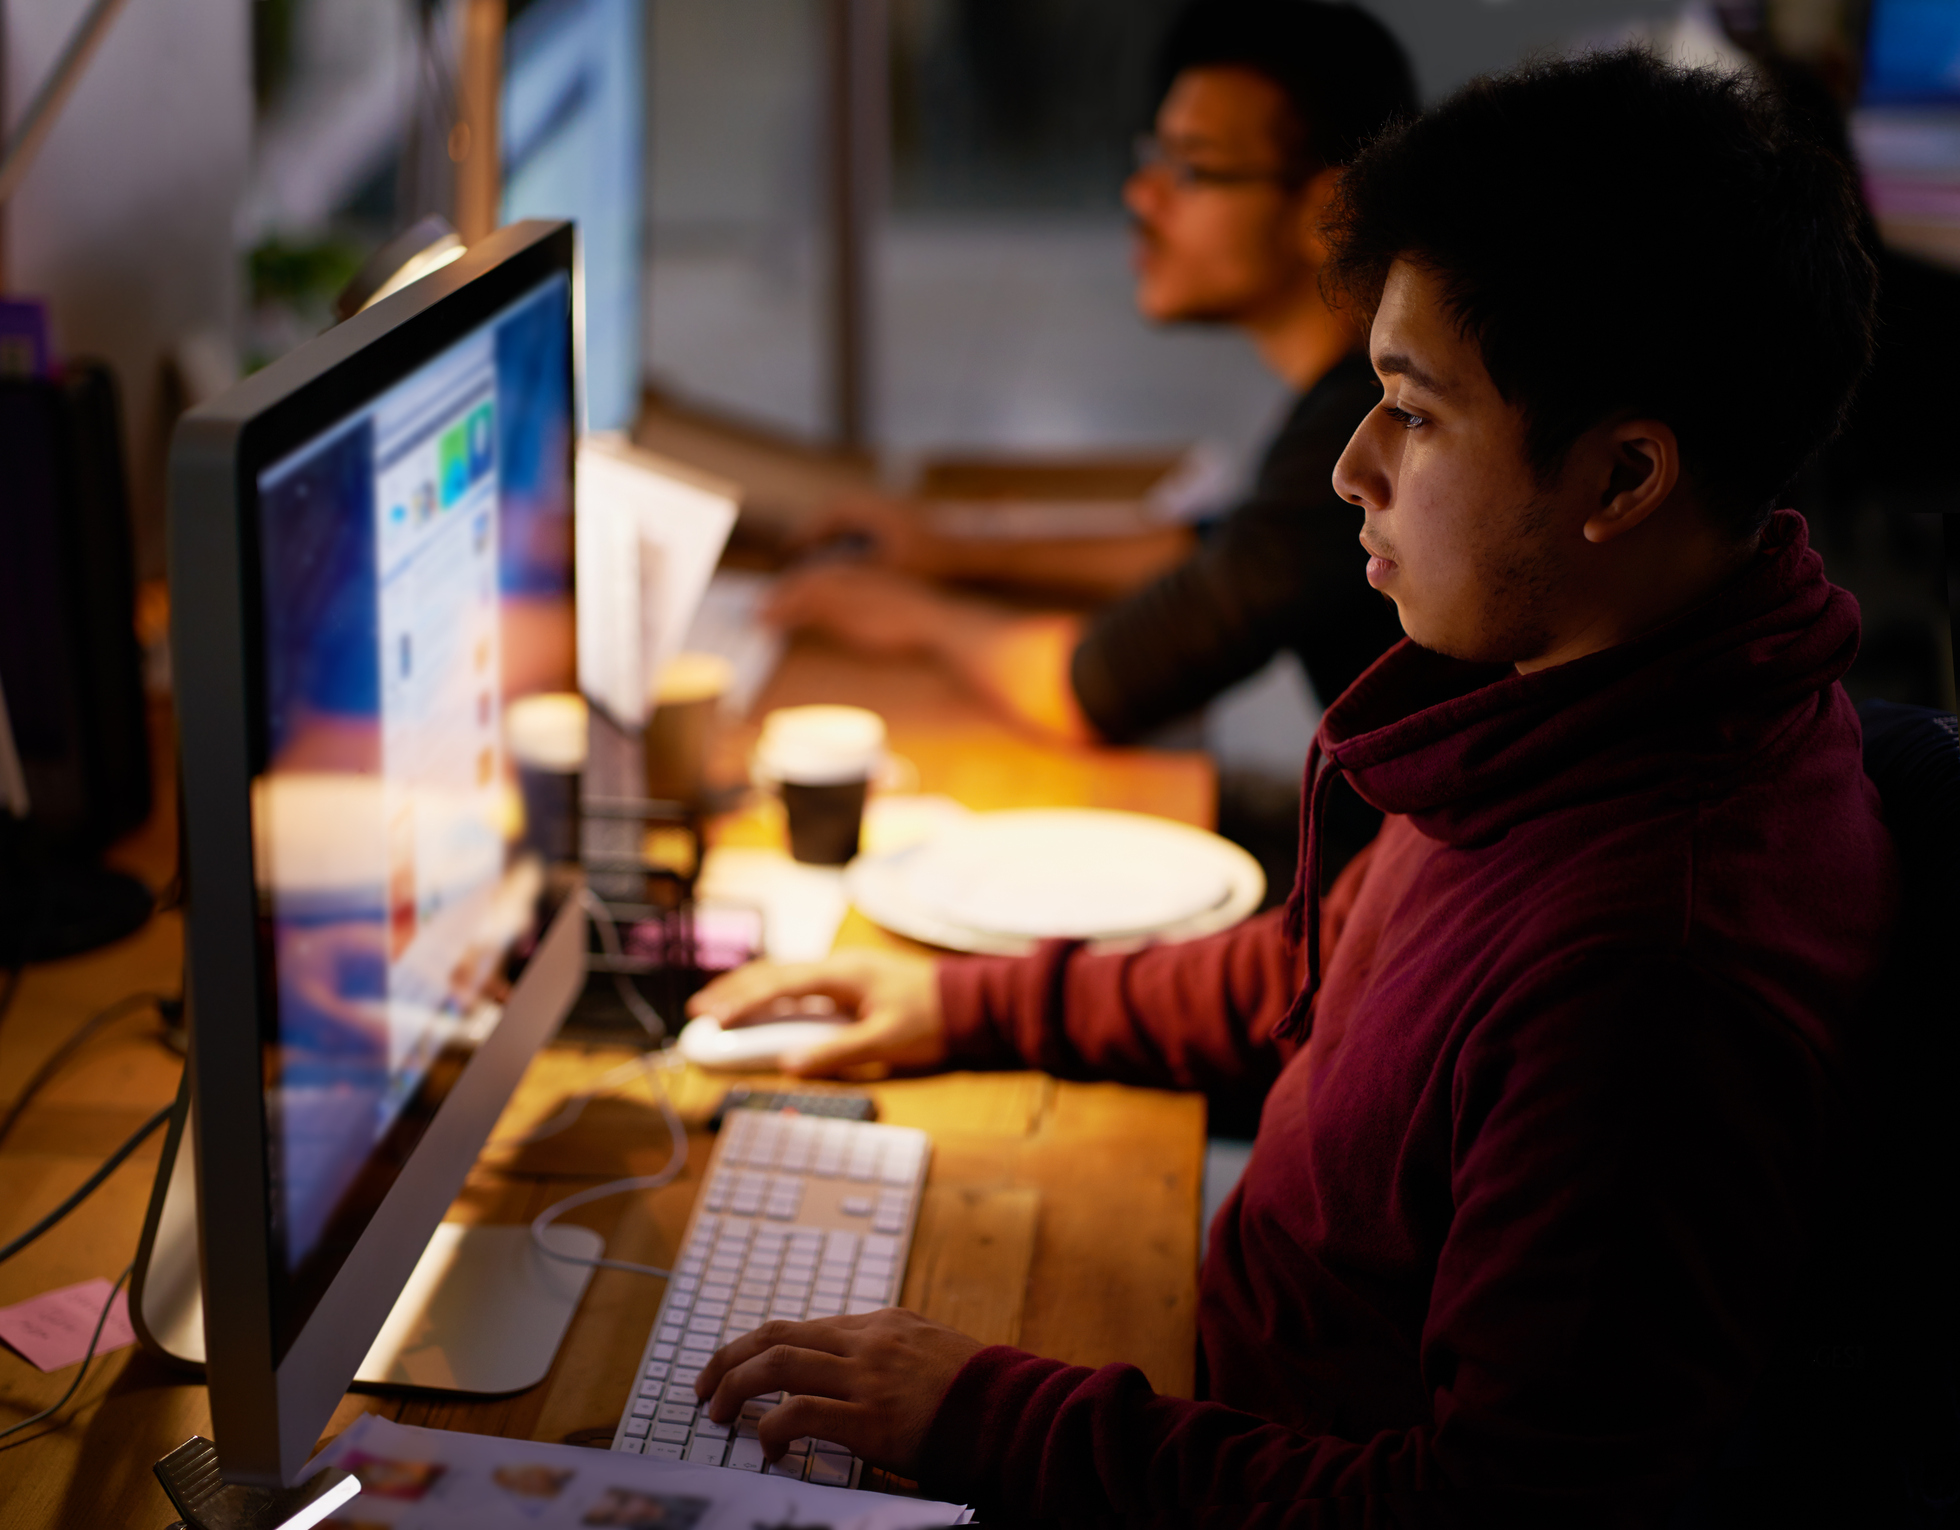 Cropped shot of a group of young coworkers working in a dimly-lit officehttp://195.154.178.81/DATA/i_collage/pi/shoots/783867.jpg